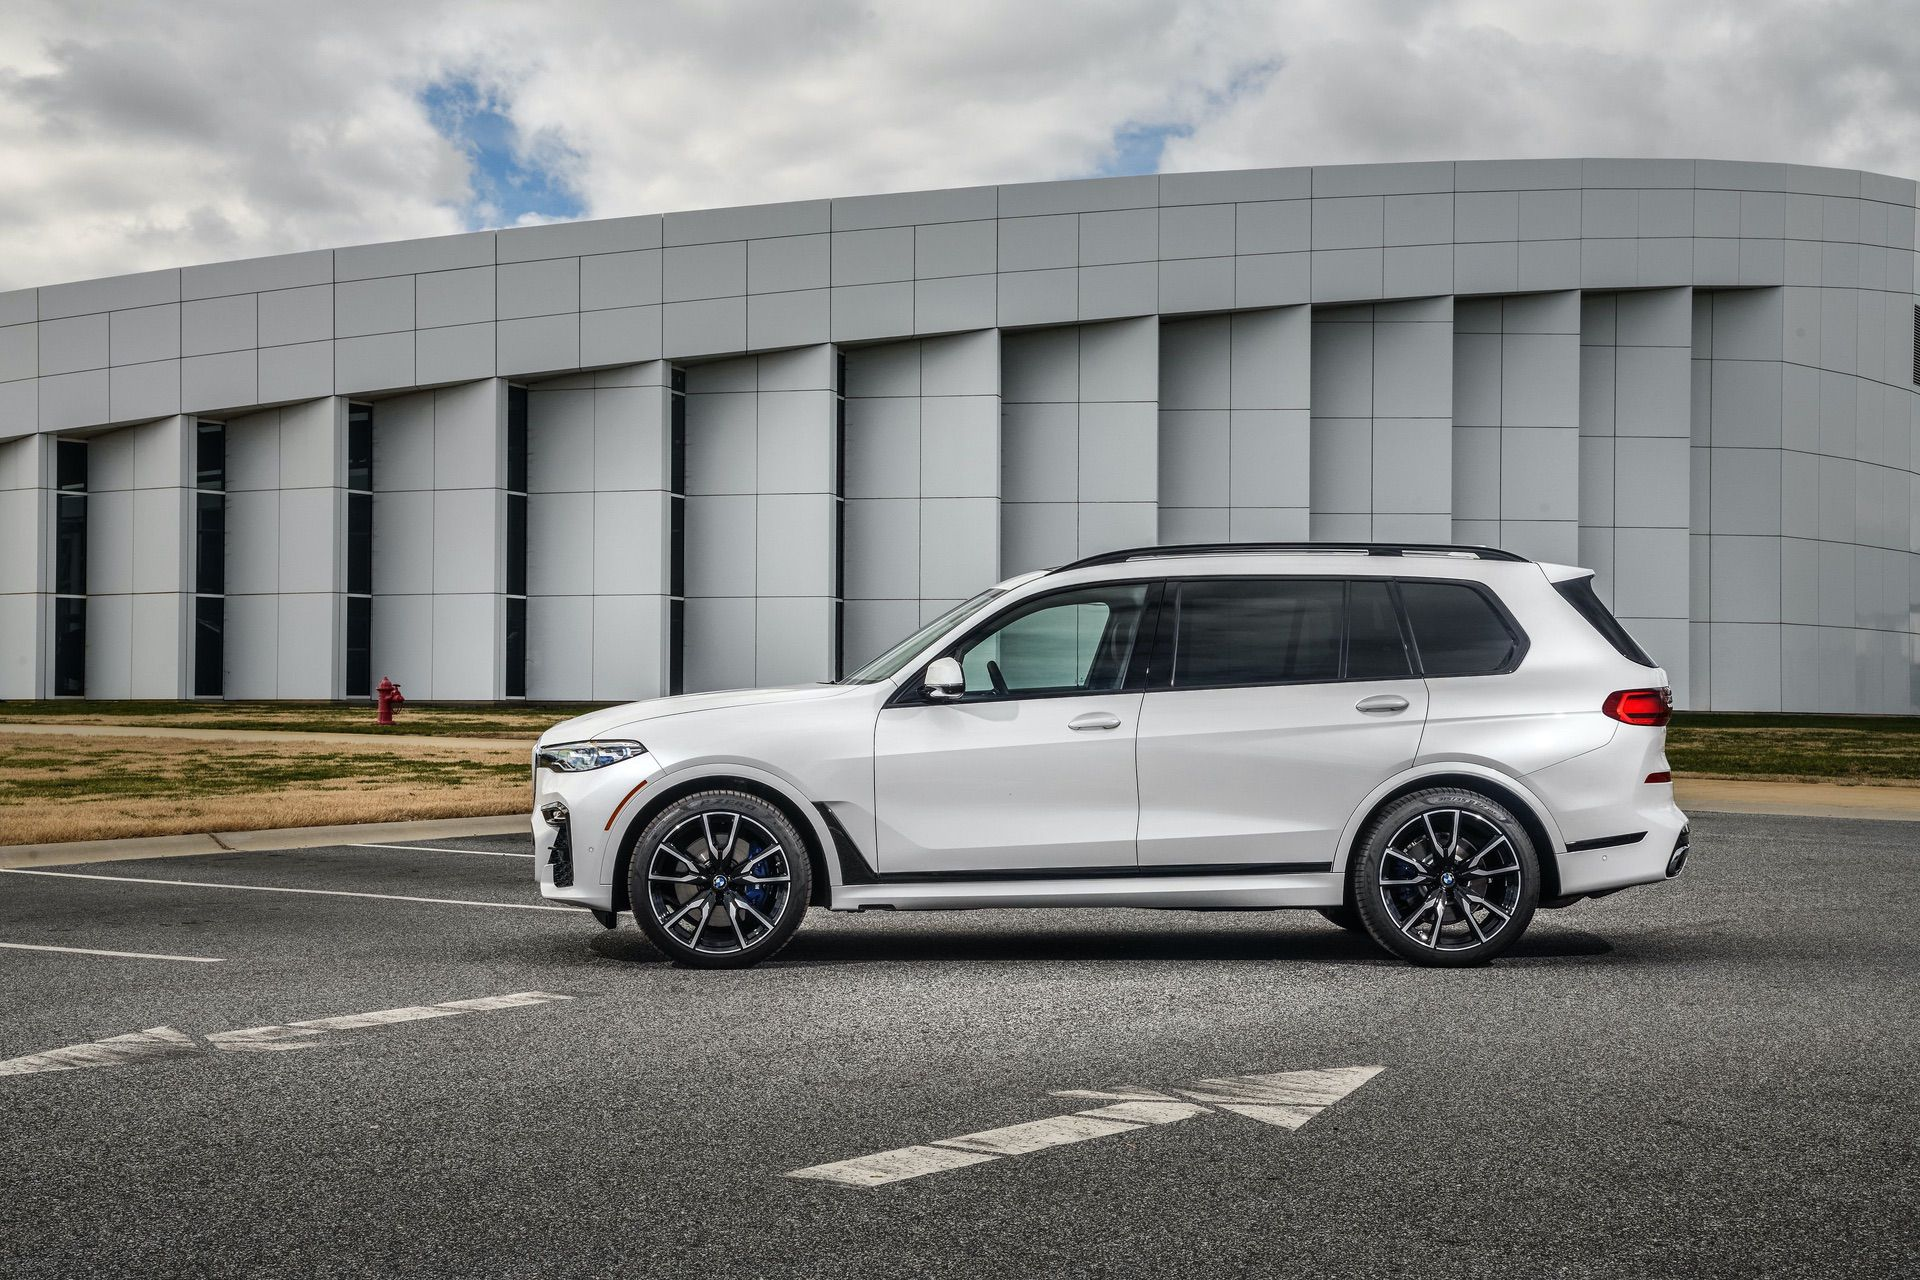 Gallery 2019 Bmw X7 Xdrive50i In Mineral White Metallic